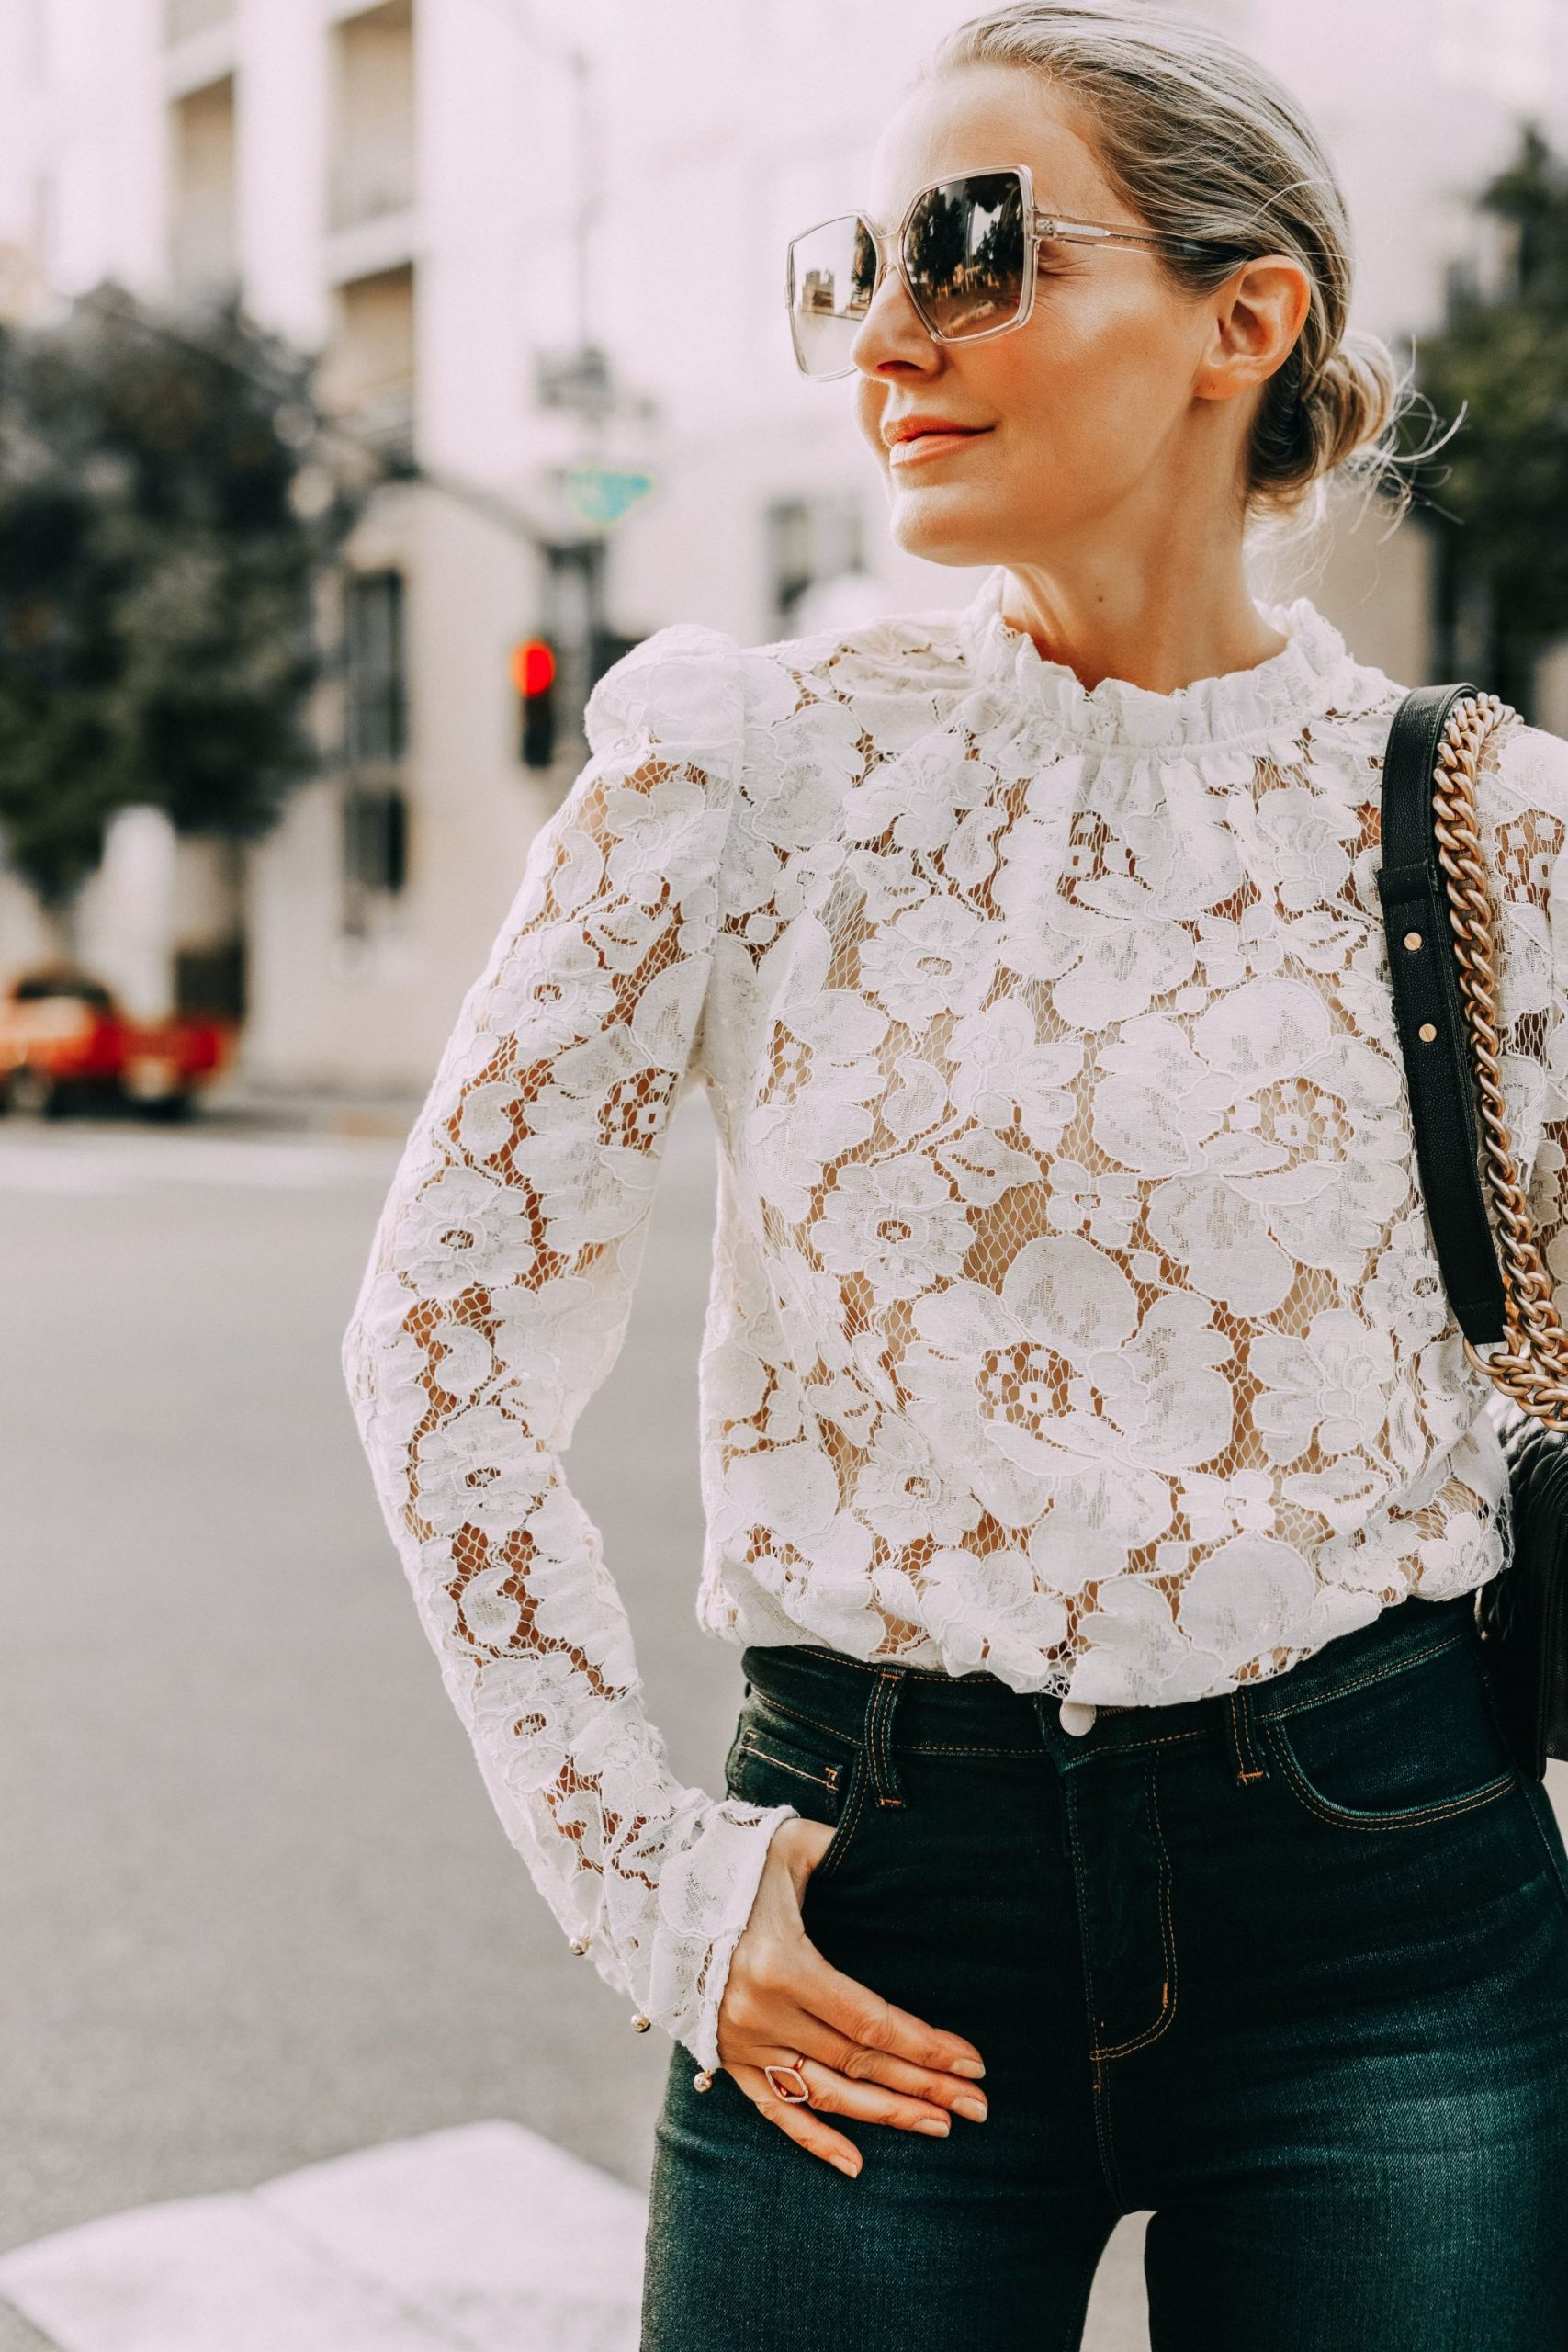 How To Style White Lace Shirt